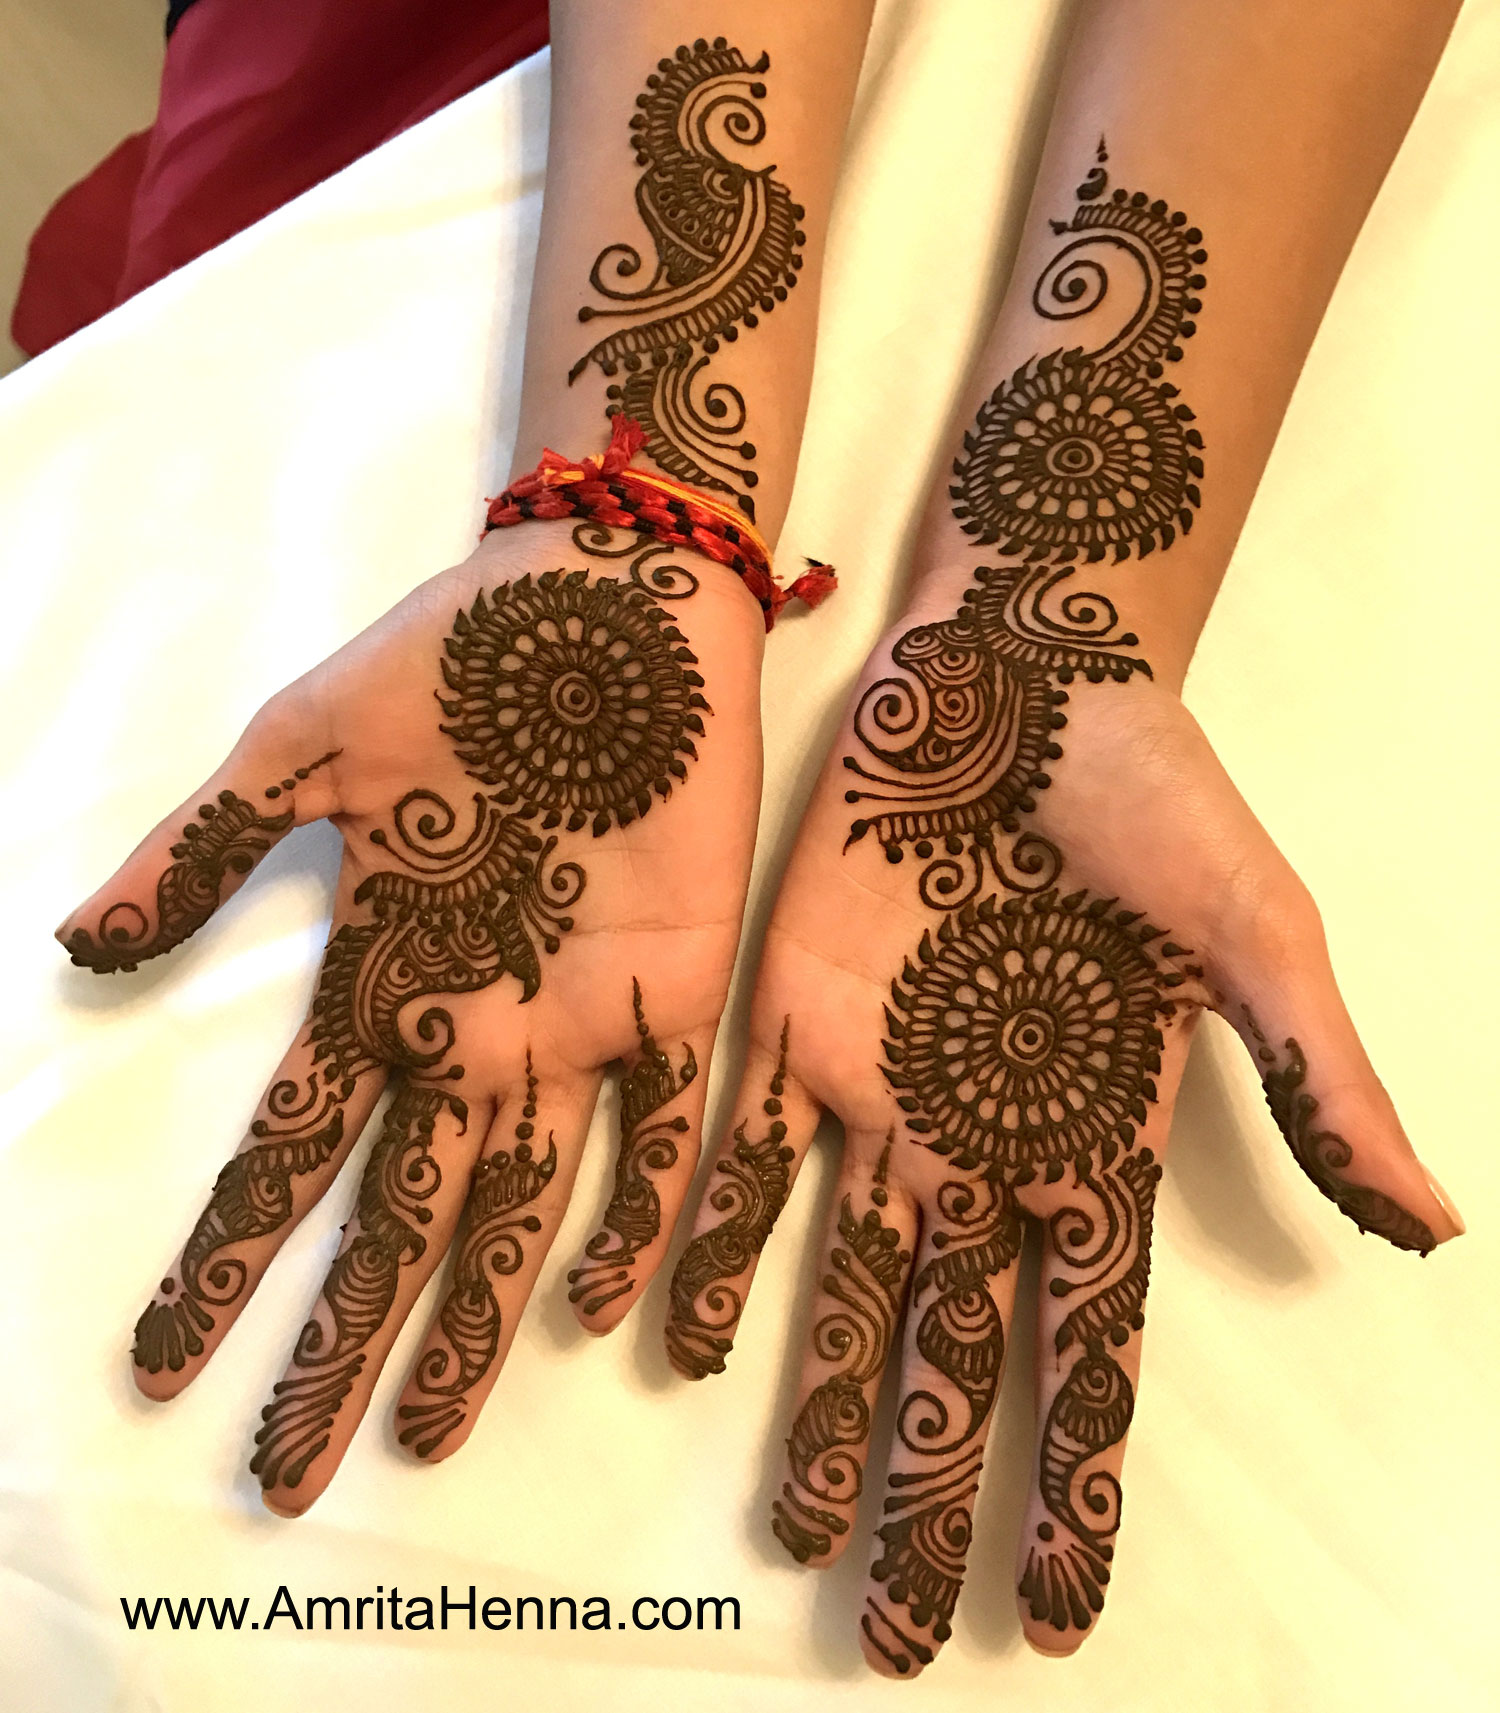 TOP 10 HENNA DESIGNS FOR YOUR BEST FRIENDS WEDDING - 10 BEST MEHNDI DESIGNS FOR YOUR BEST FRIENDS WEDDING - 10 MOST POPULAR MEHENDI DESIGNS FOR THIS WEDDING SEASON - BEST 10 HENNA MEHANDI DESIGN FOR A WEDDING PARTY - 10 STUNNING HENNA DESIGNS WHEN YOUR BEST FRIEND GETS MARRIED - TOP 10 HENNA DESIGNS FOR YOUR FRIENDS HENNA CEREMONY - 10 BEAUTIFUL MEHNDI DESIGNS FOR A HENNA PARTY - BEST FRIENDS WEDDING HENNA DESIGN IDEAS - TOP 10 INDIAN WEDDING IDEAS - 10 BEST HENNA PARTY IDEAS - 10 AMAZING HENNA DESIGNS FOR YOUR BEST FRIENDS WEDDING